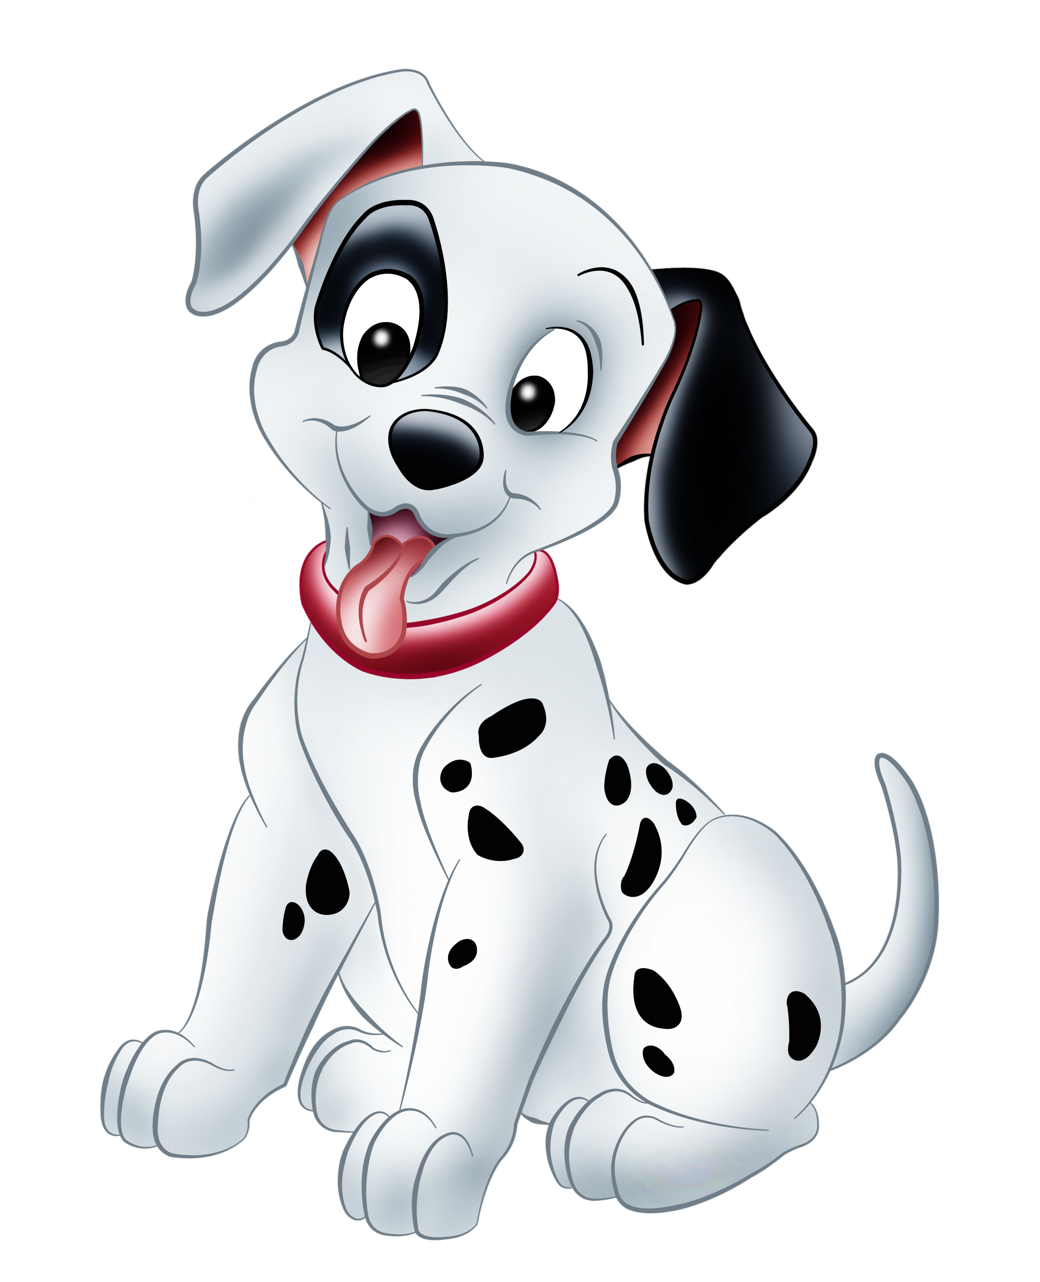 Dog in snow clipart clipart free stock Puppy 101 Dalmatians PNG Clipart Picture | cartoon and game ... clipart free stock